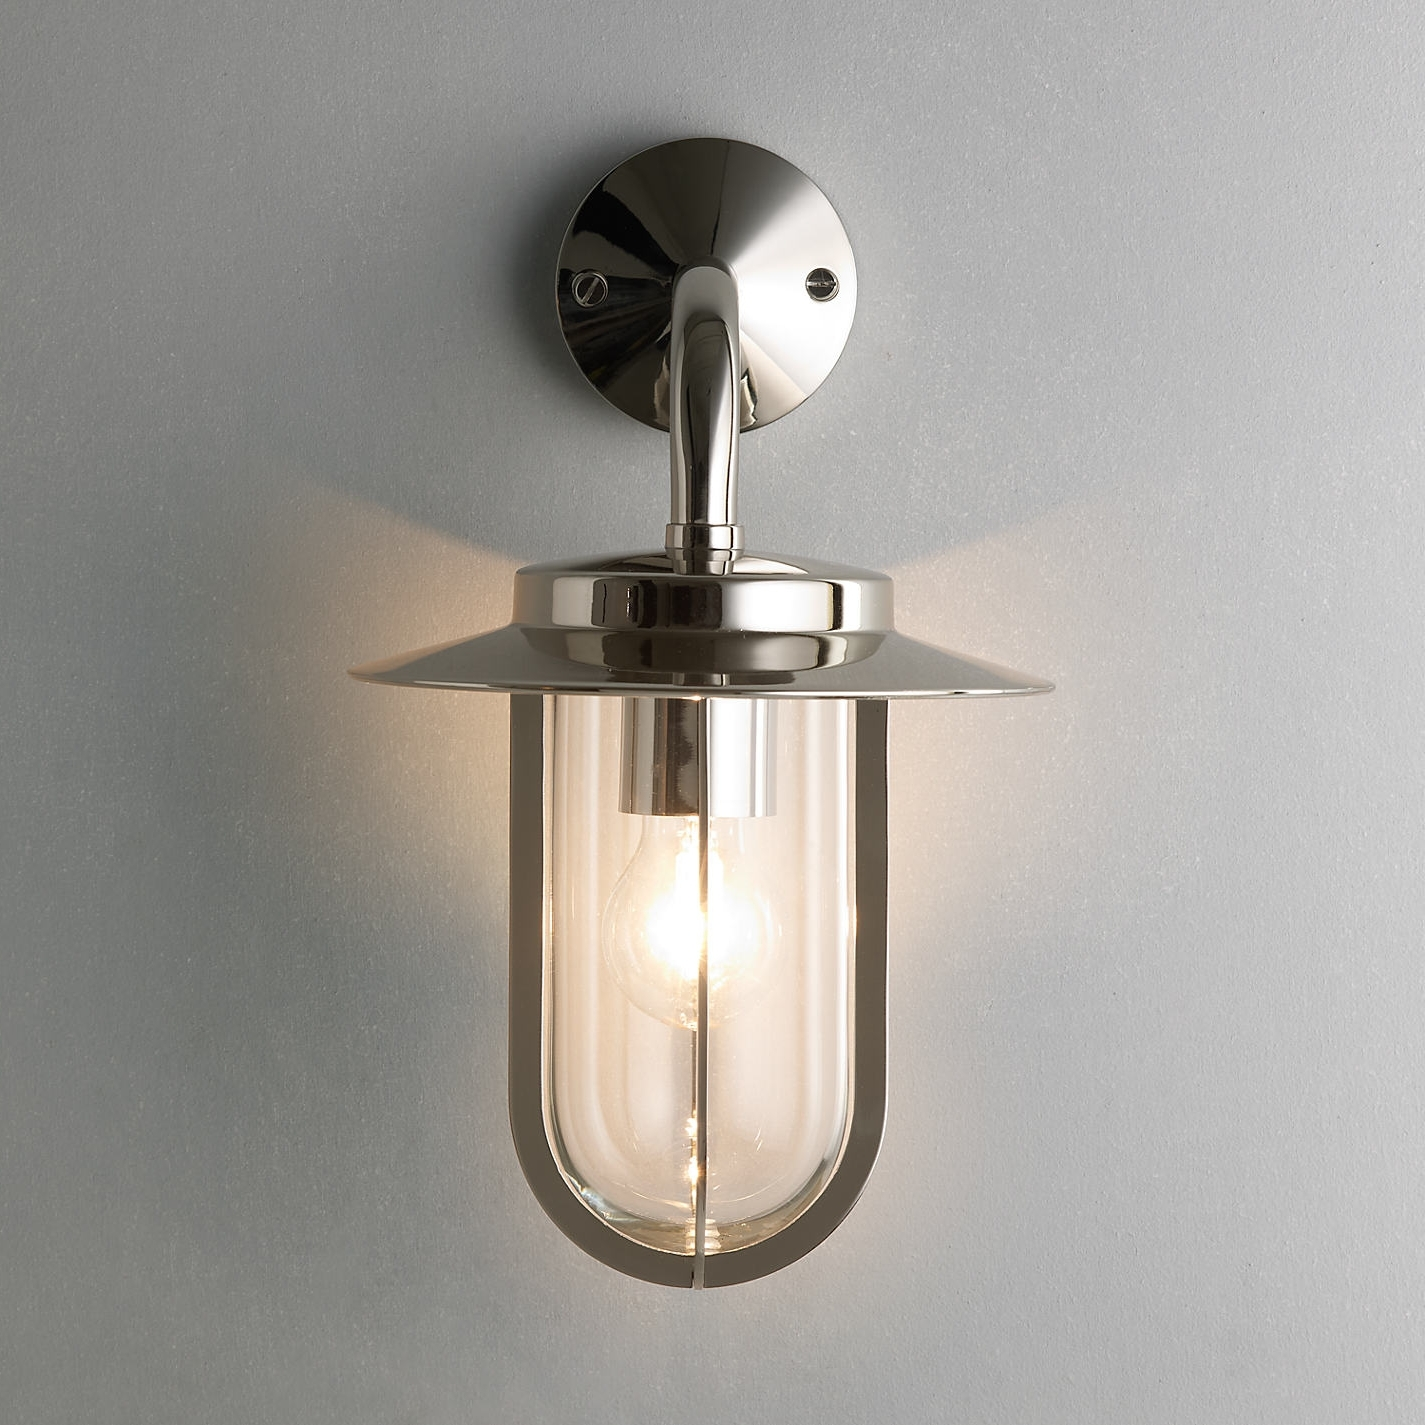 Trendy Light : Great Outdoor Wall Light With Pir Sensor For Your Blue Regarding Motion Sensor Outdoor Hanging Lights (View 17 of 20)